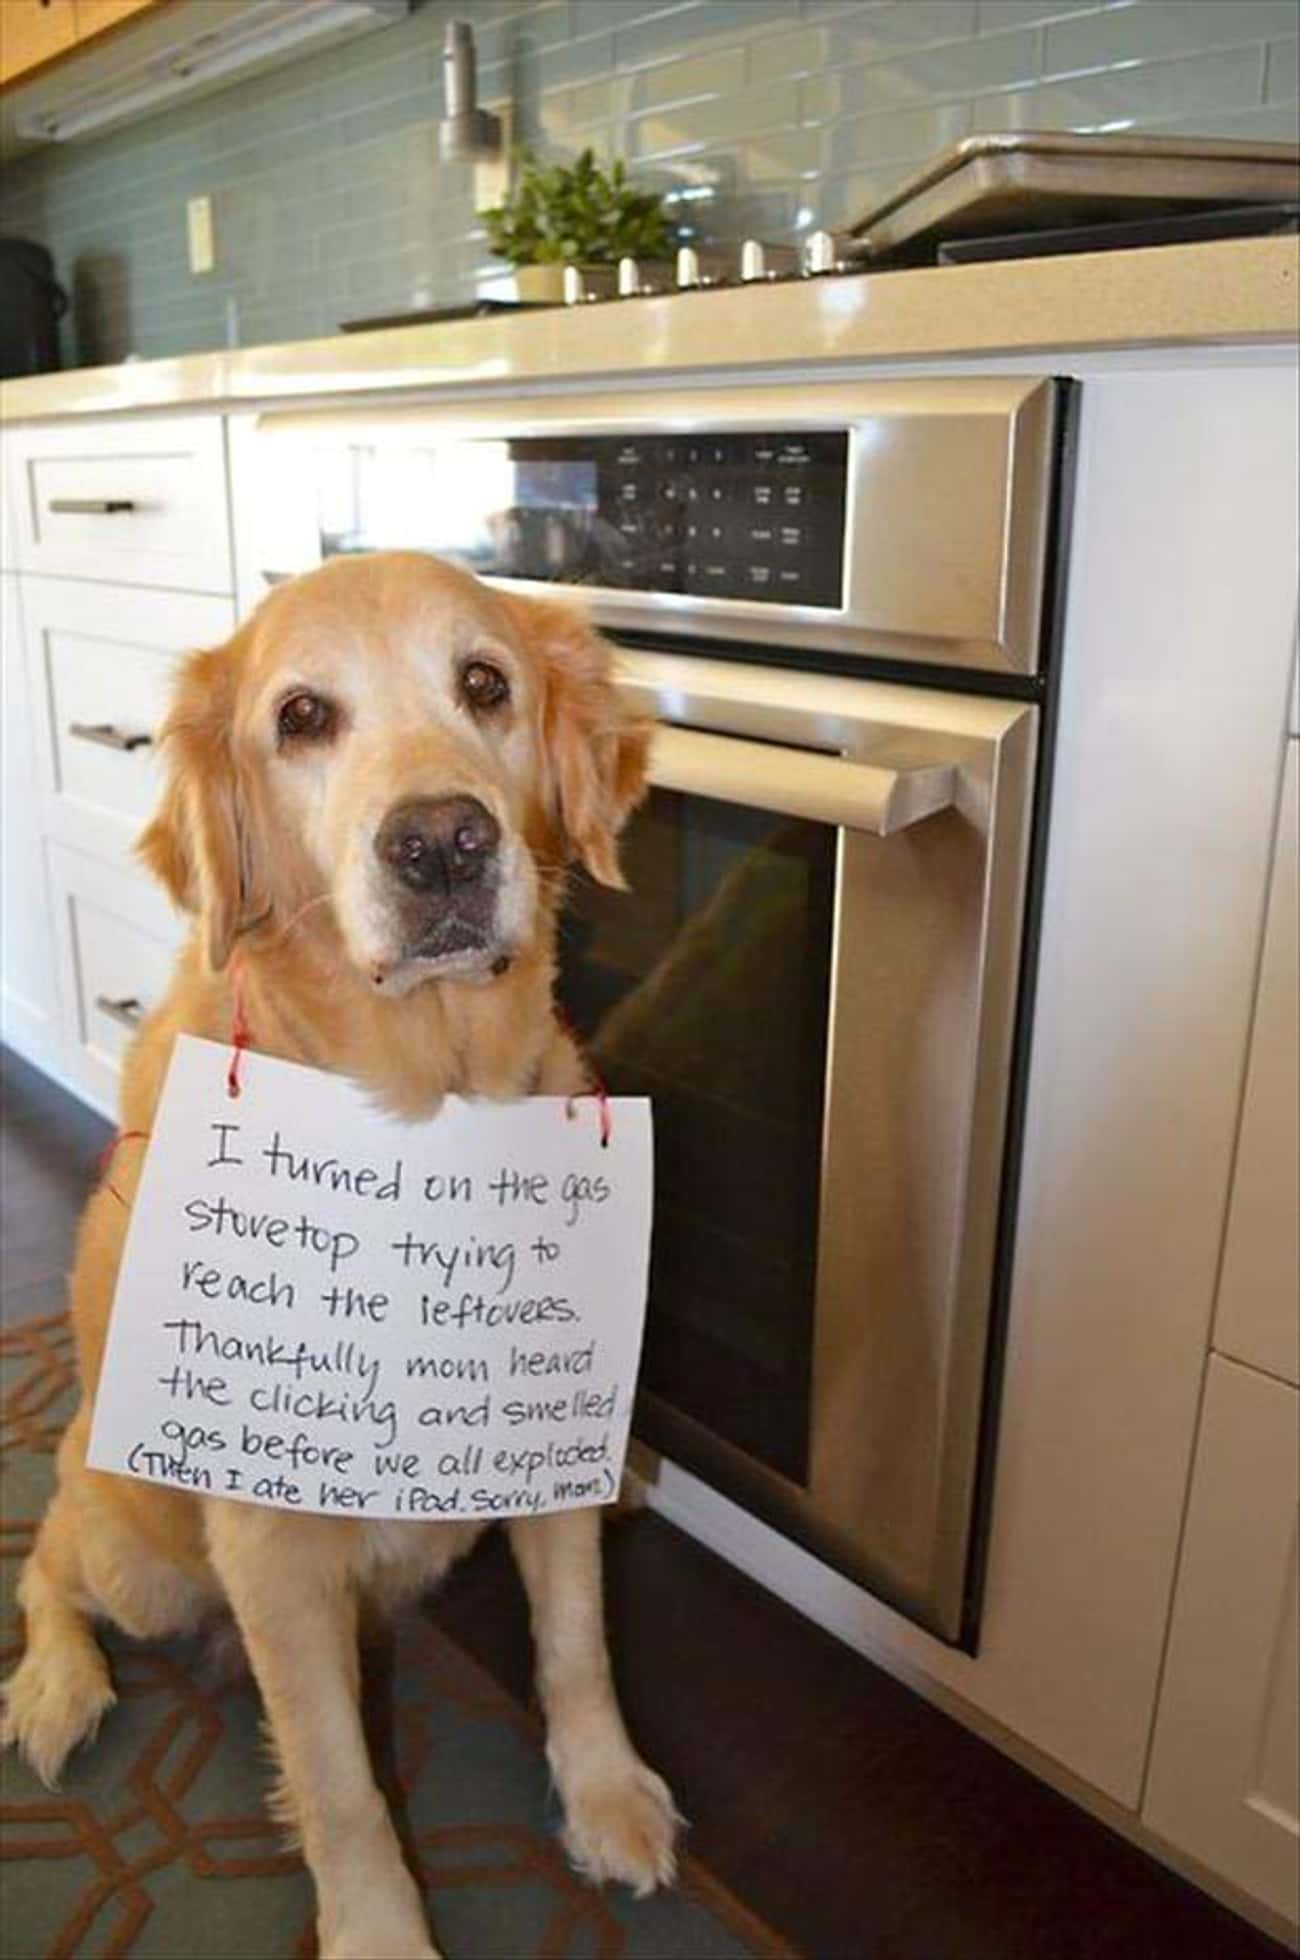 This Hungry Guy Who Almost Ble is listed (or ranked) 4 on the list 11 Dogs Who Ruined Thanksgiving